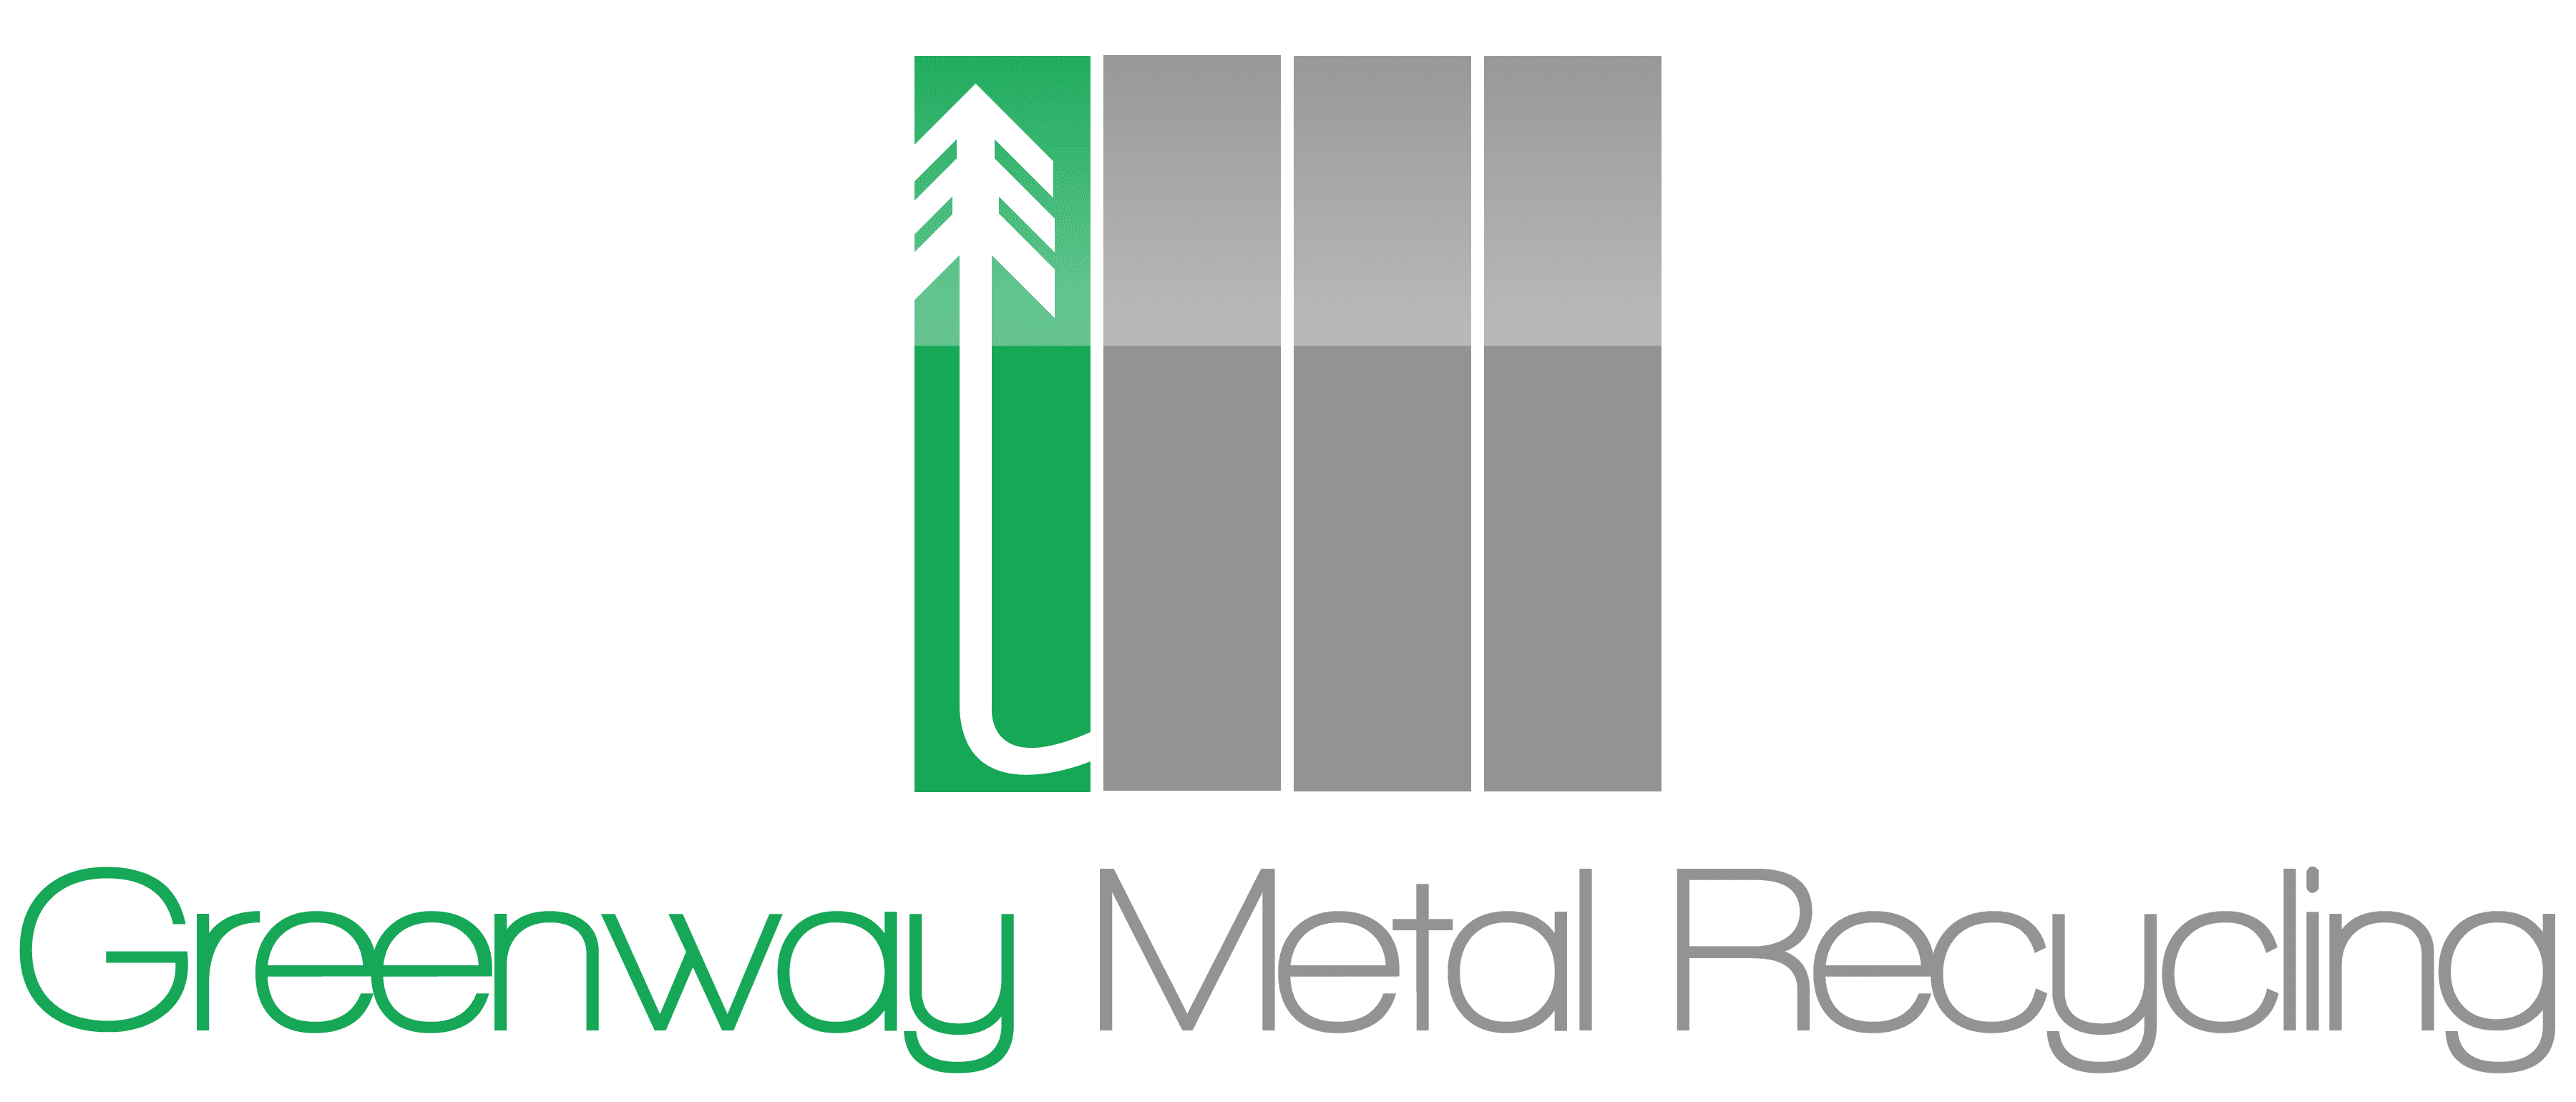 Greenway Metal Recycling | DJD Marketing Client